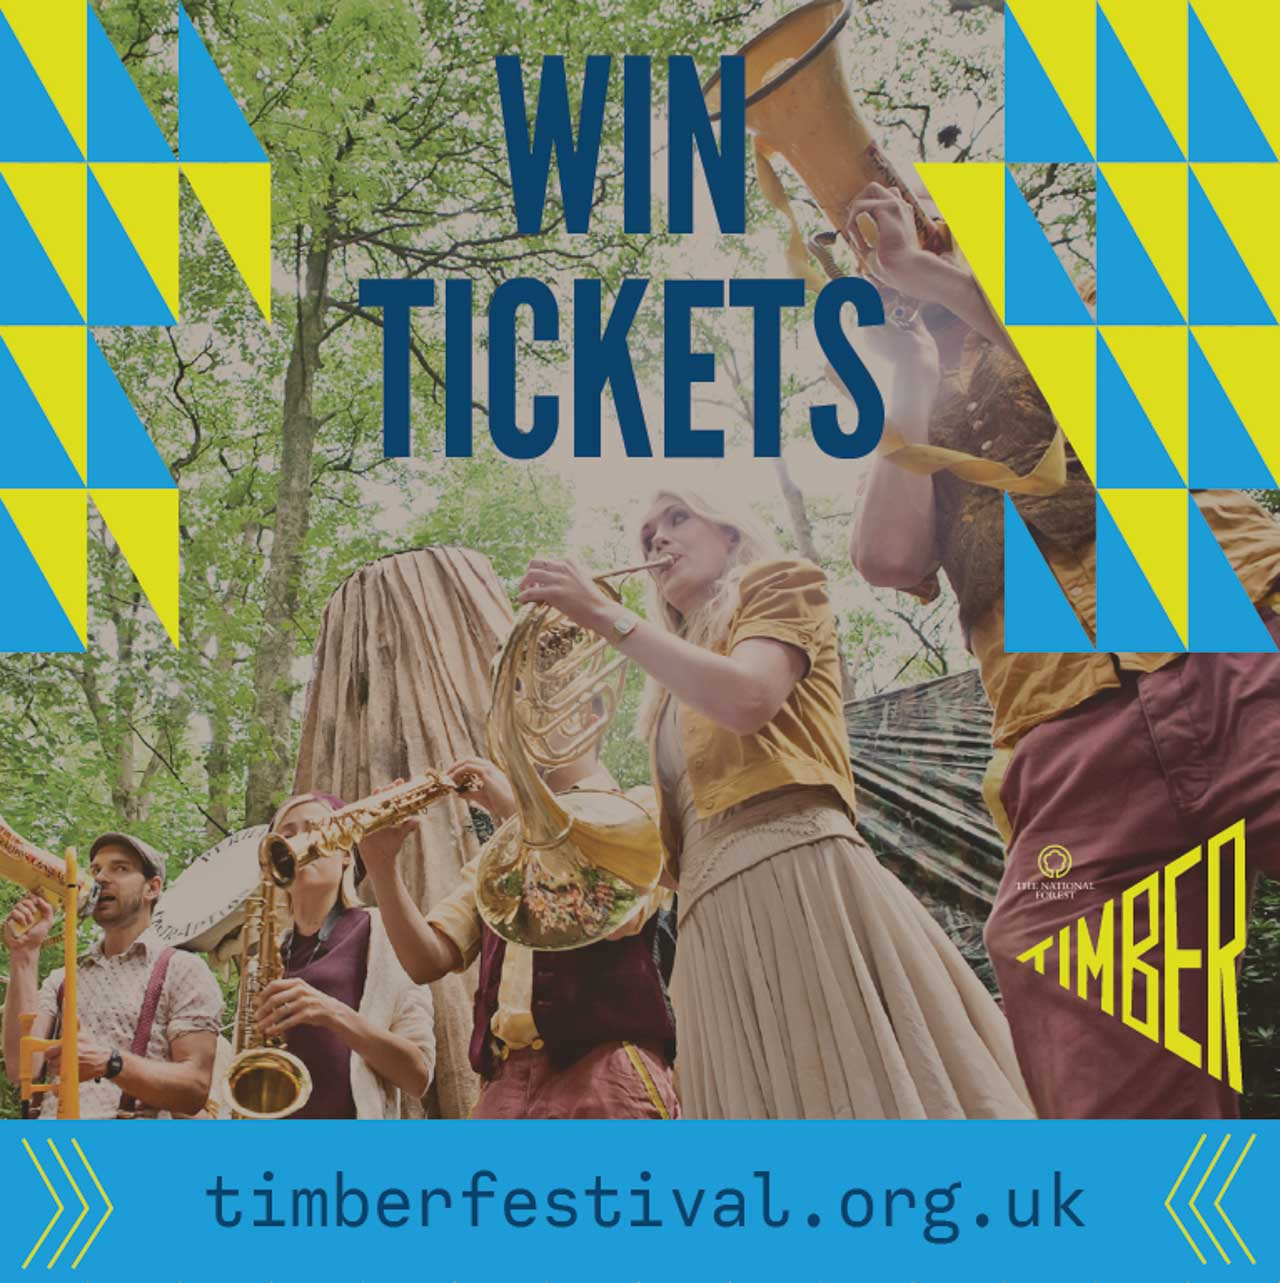 timber-tickets-2 Win Family Tickets to The Timber Festival!